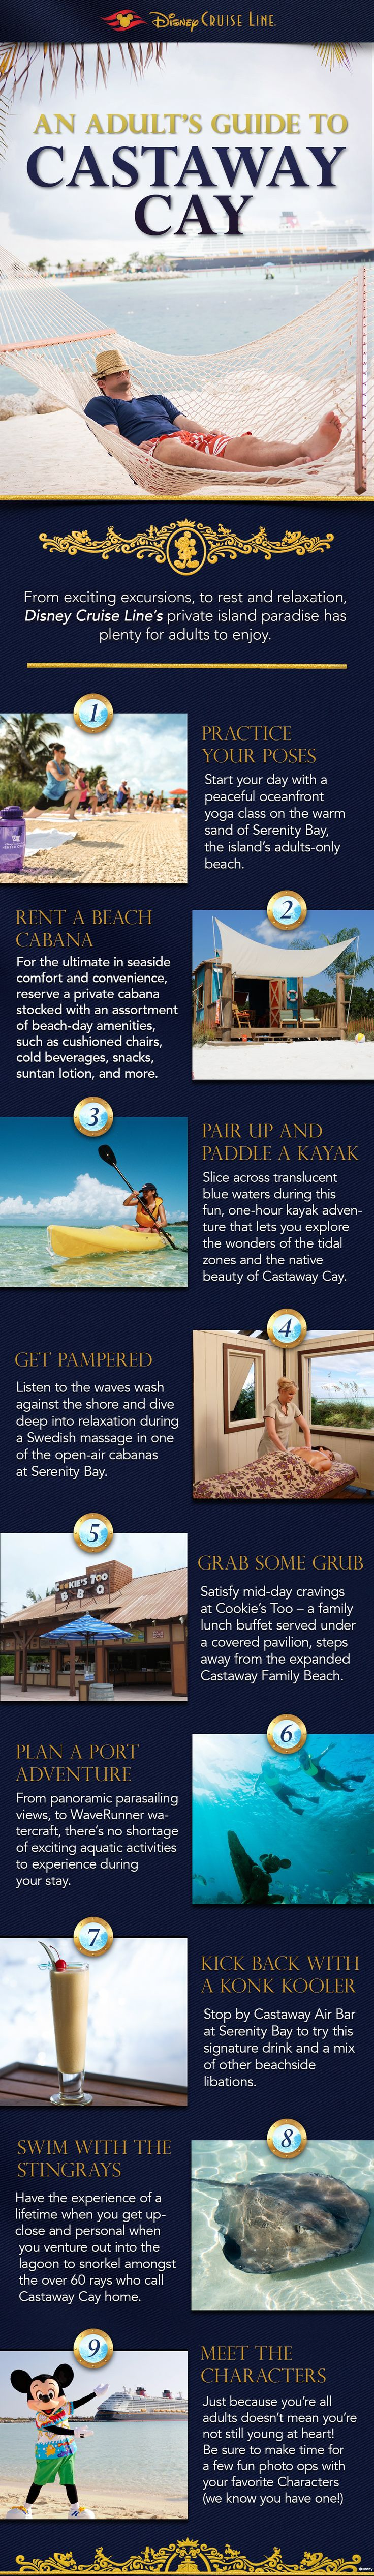 From exciting excursions to rest and relaxation, Disney Cruise Line's private island paradise has plenty for adults to enjoy.